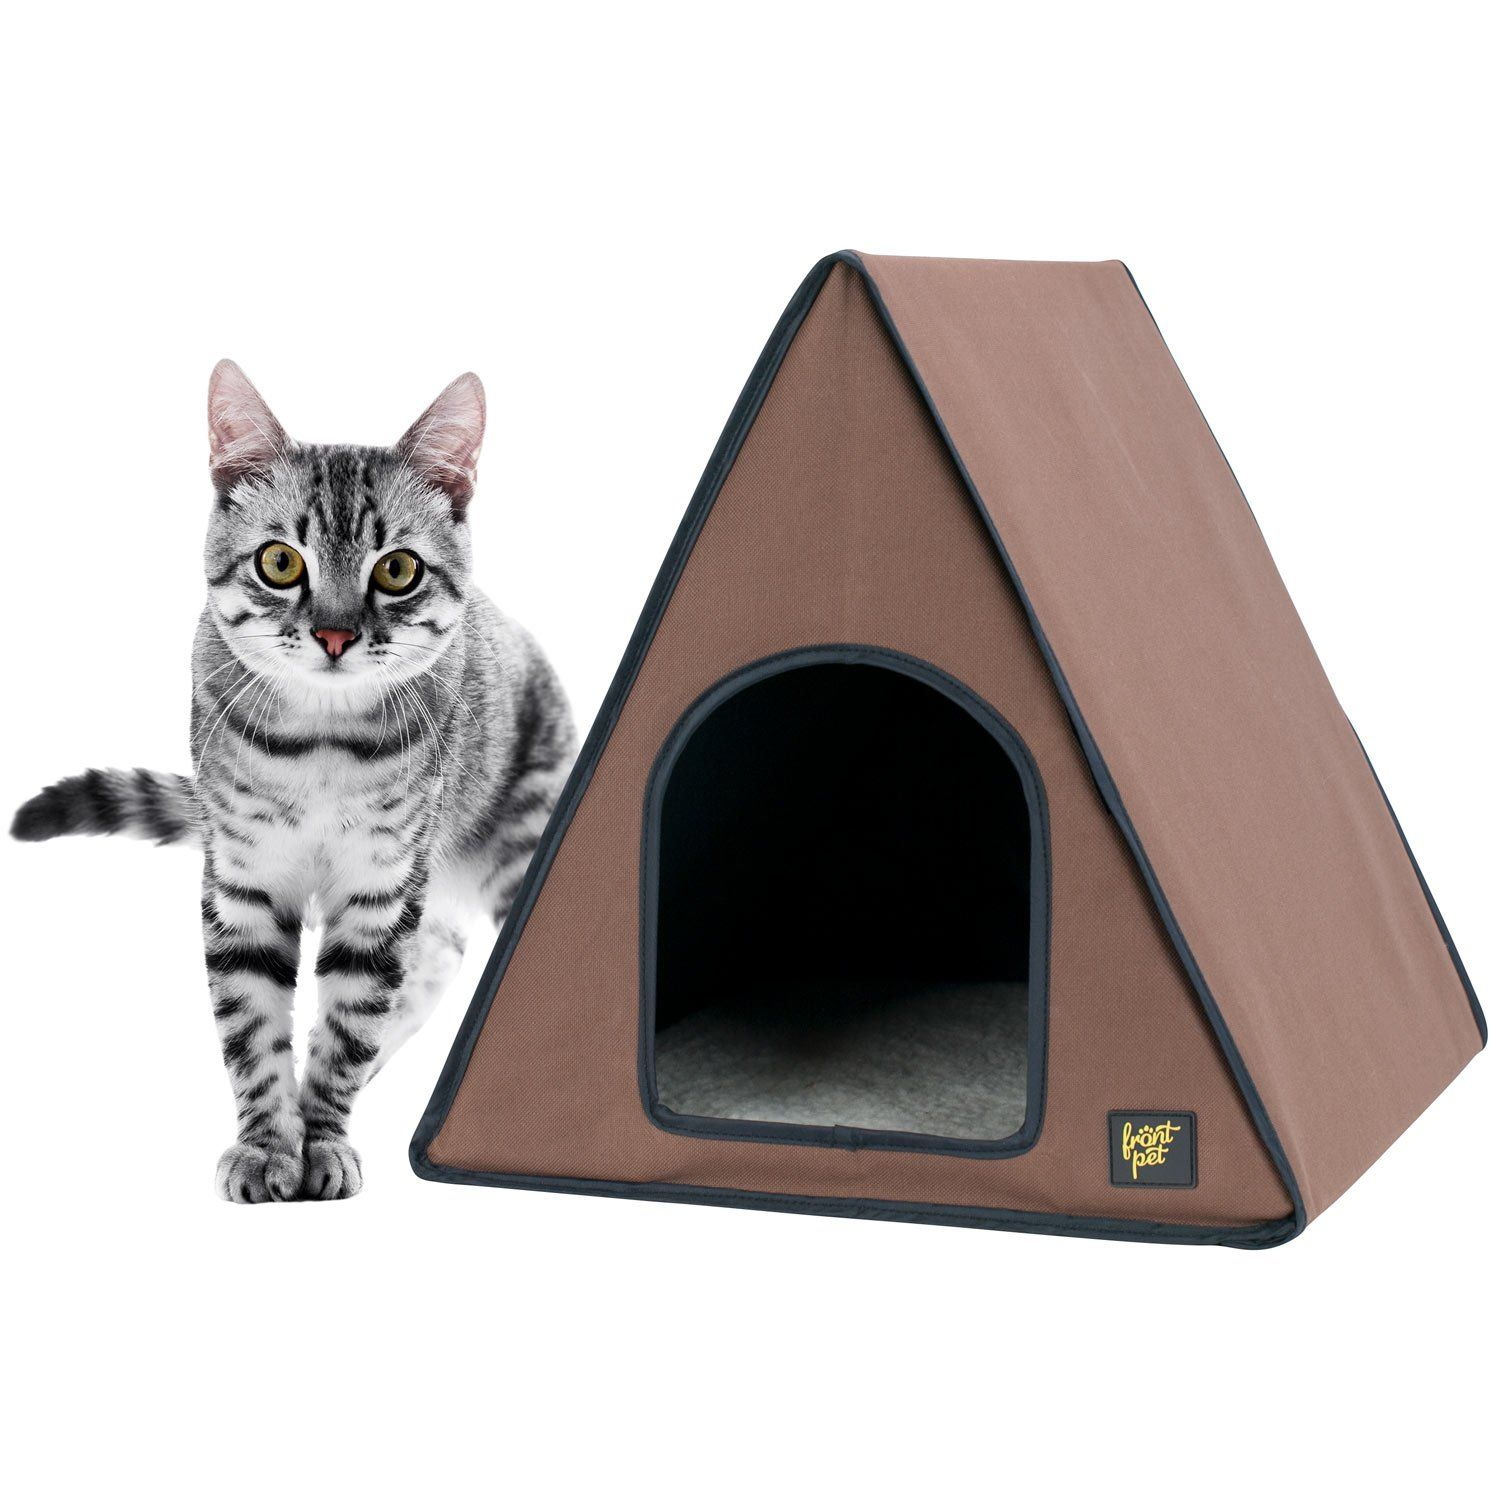 Frontpet A Frame Heated Cat House With Fleece Bed Insert Pad And Protected Double Door Openings Brown Cat House For Indoor Heated Cat House Cat Tent Cat House